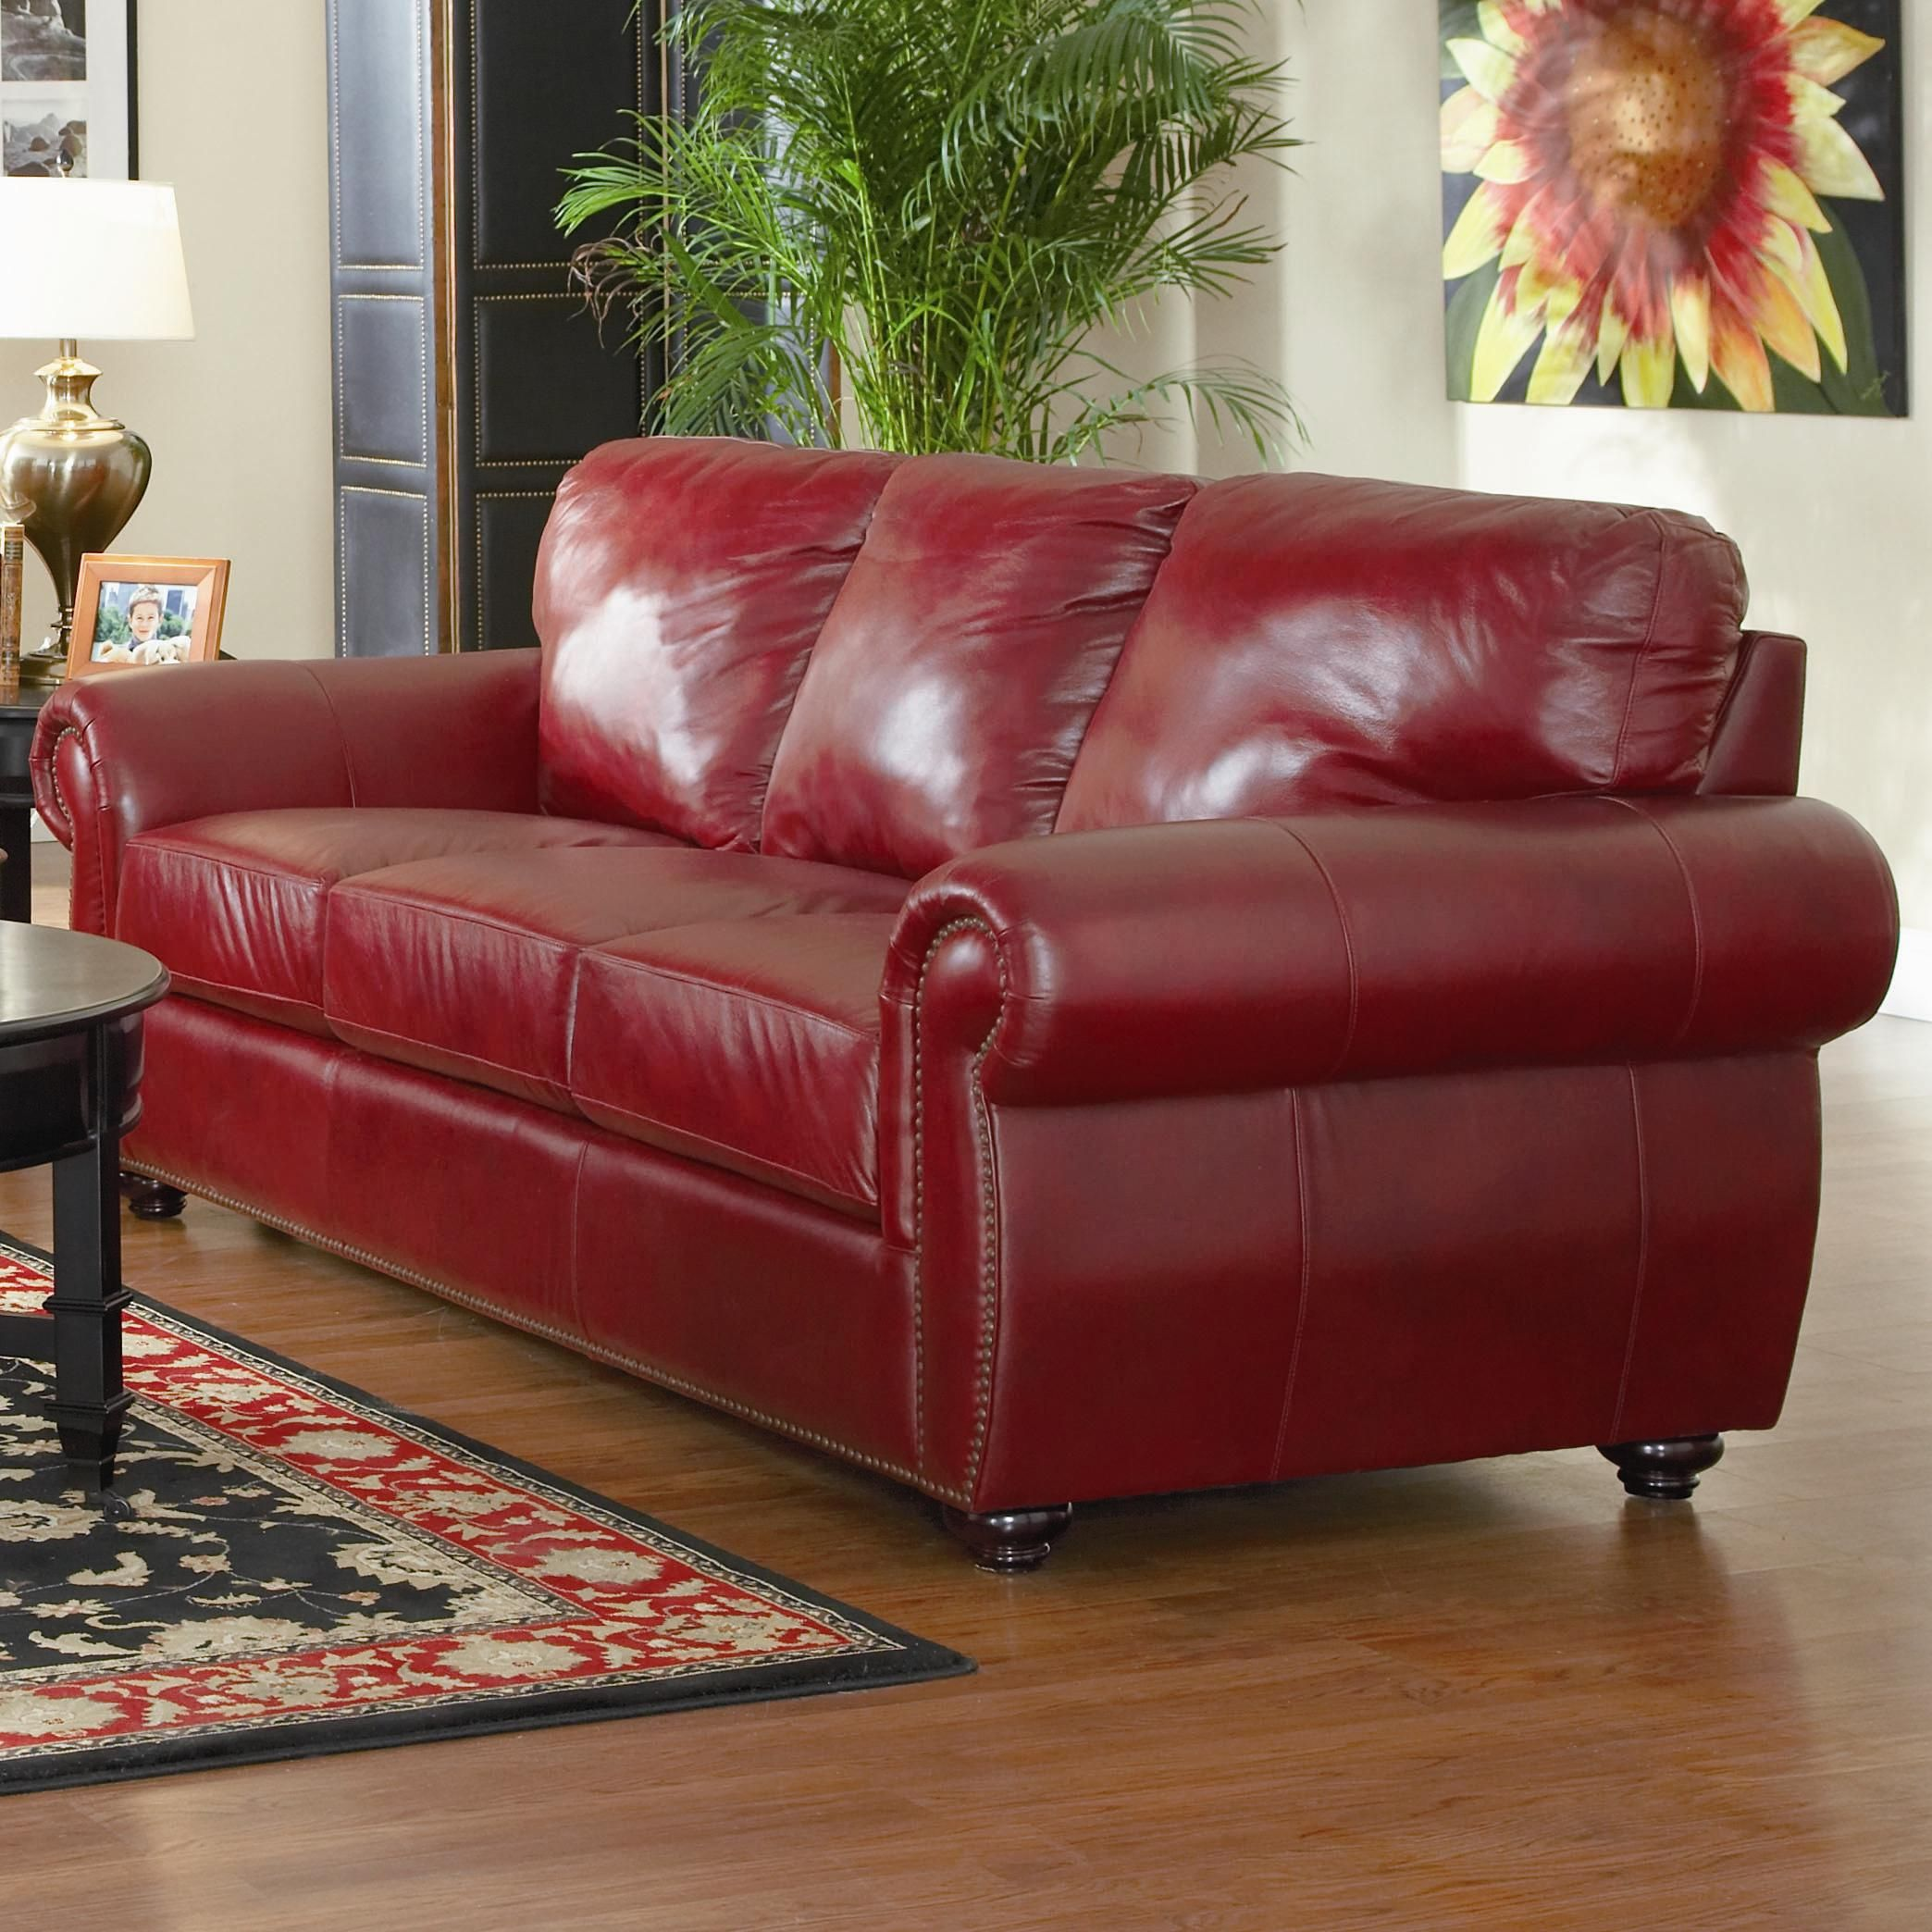 chinese red leather sofa | ... Lewis Collection Burgundy ...